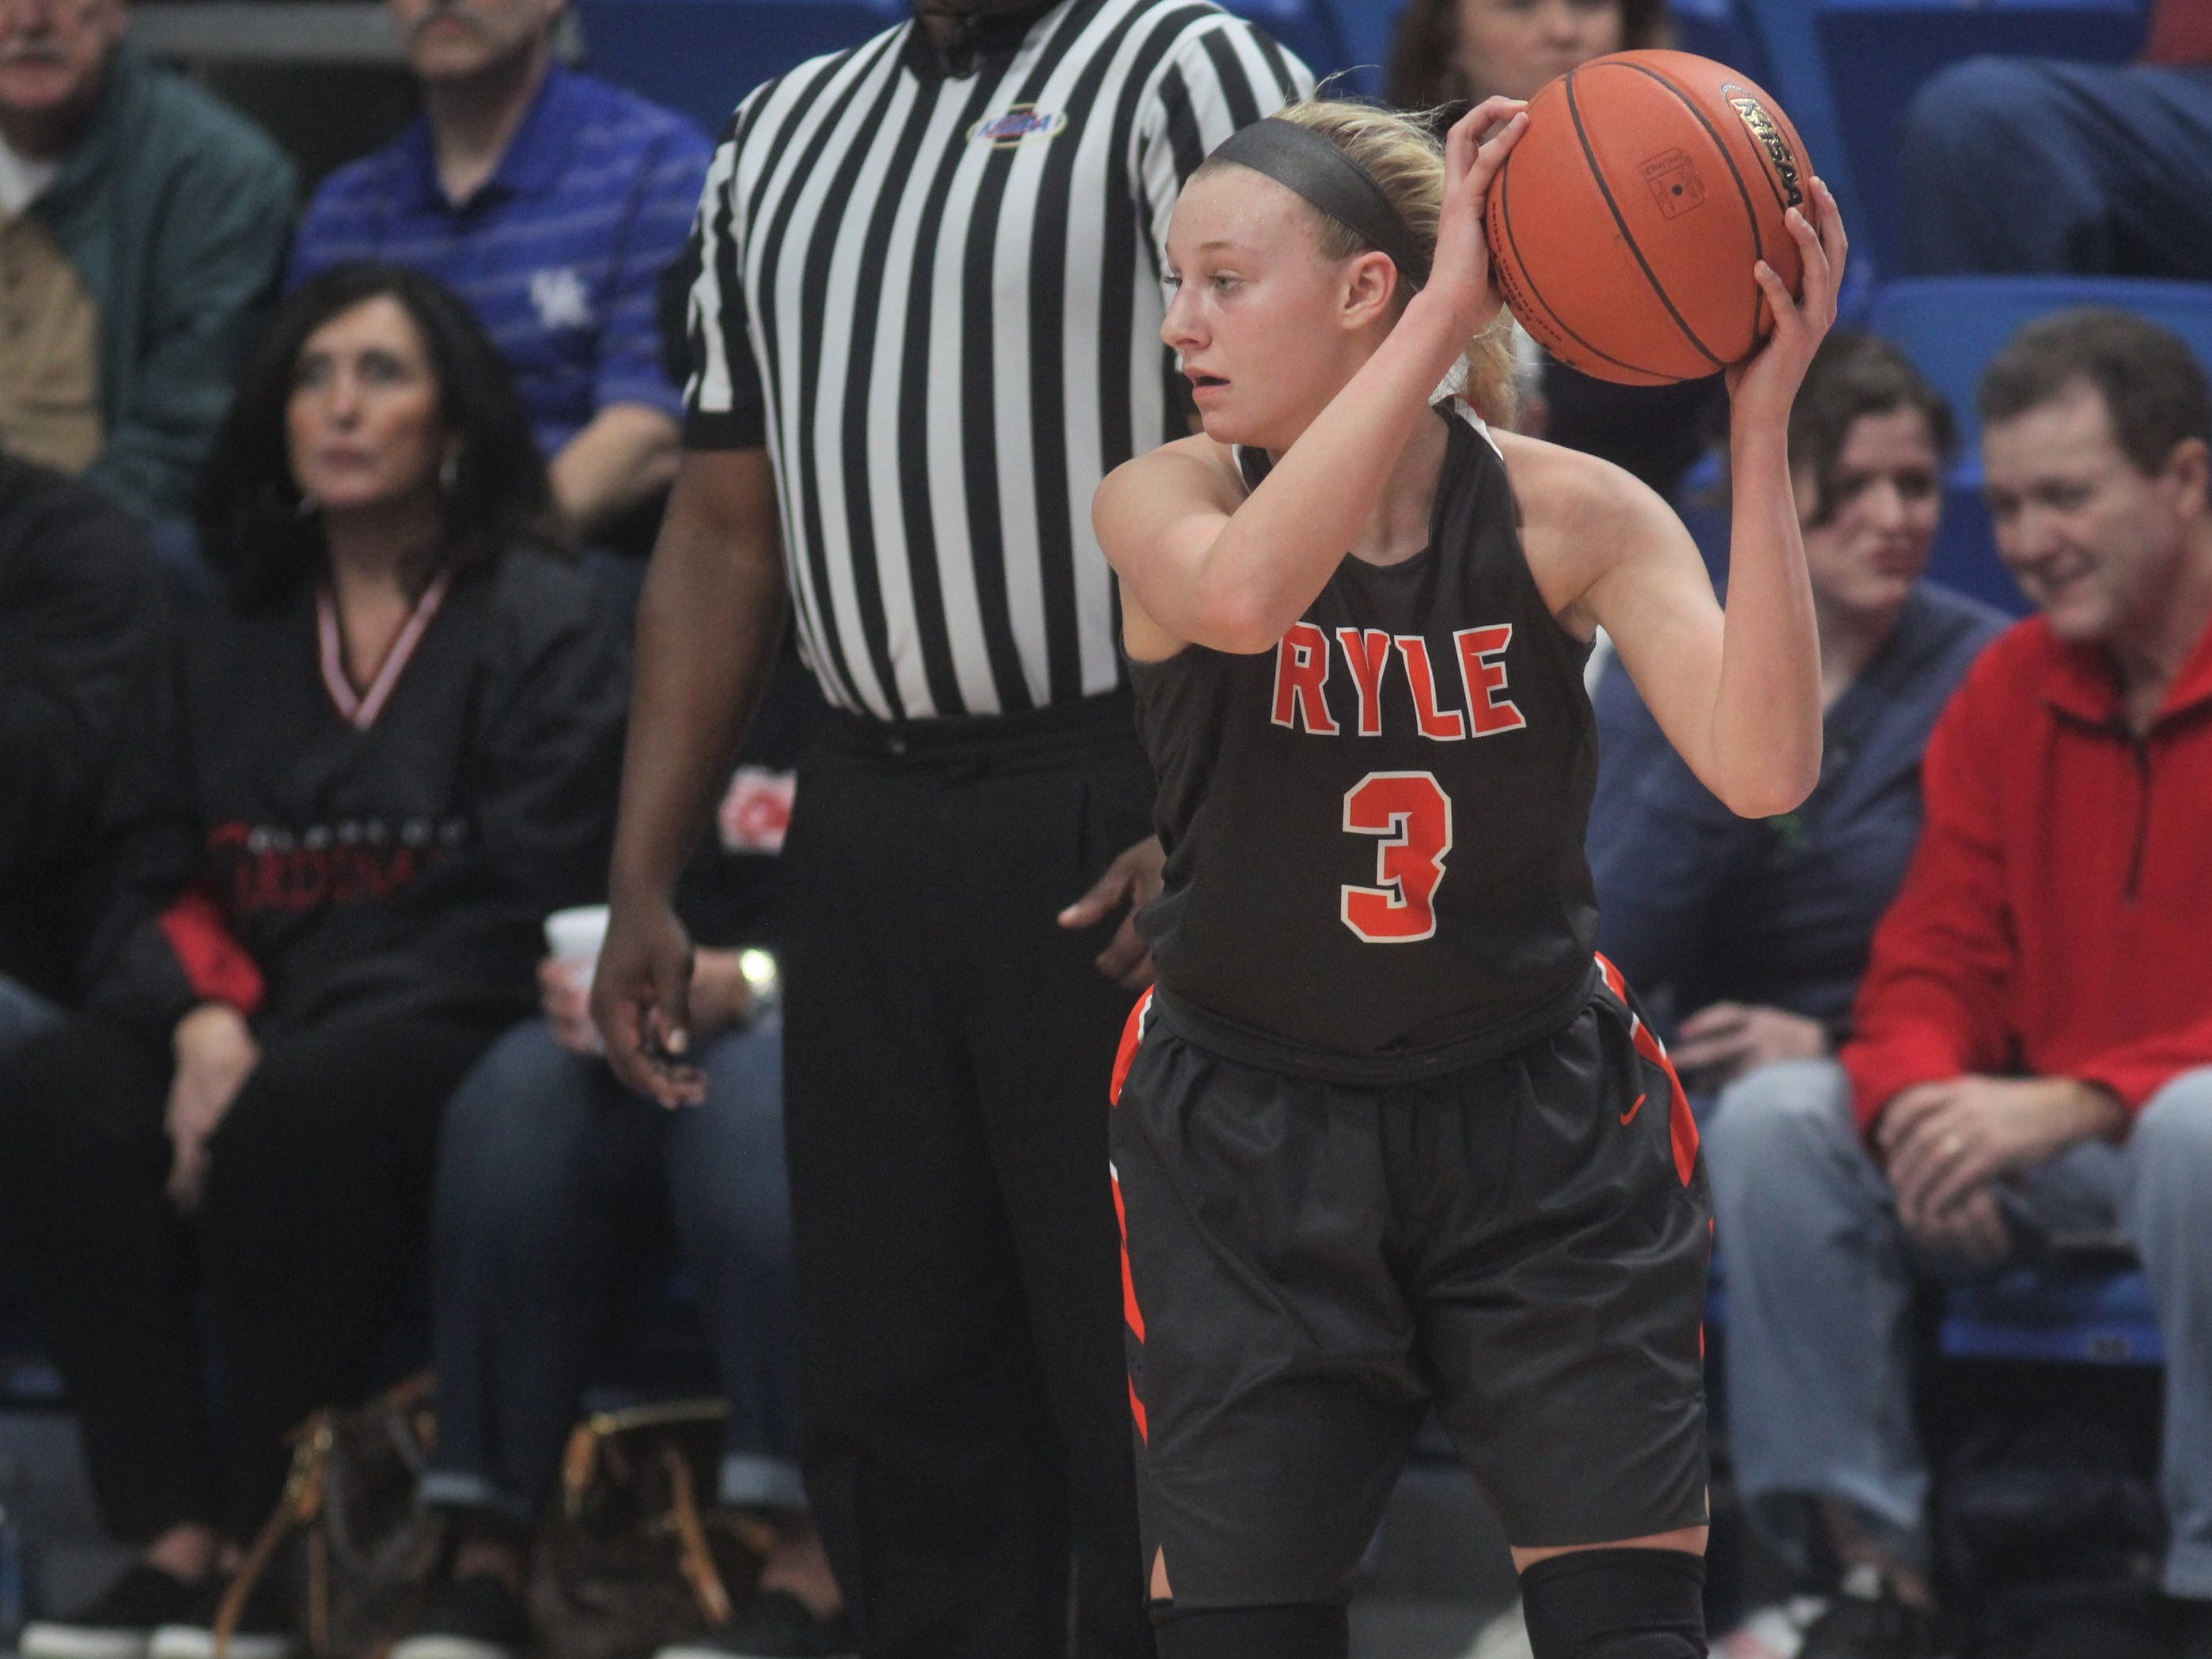 Ryle sophomore Brie Crittendon looks to pass to a teammate as Ryle defeated George Rogers Clark 64-51 in the state quarterfinals of the KHSAA Sweet 16 girls basketball tournament March 15, 2019 at Rupp Arena, Lexington KY.